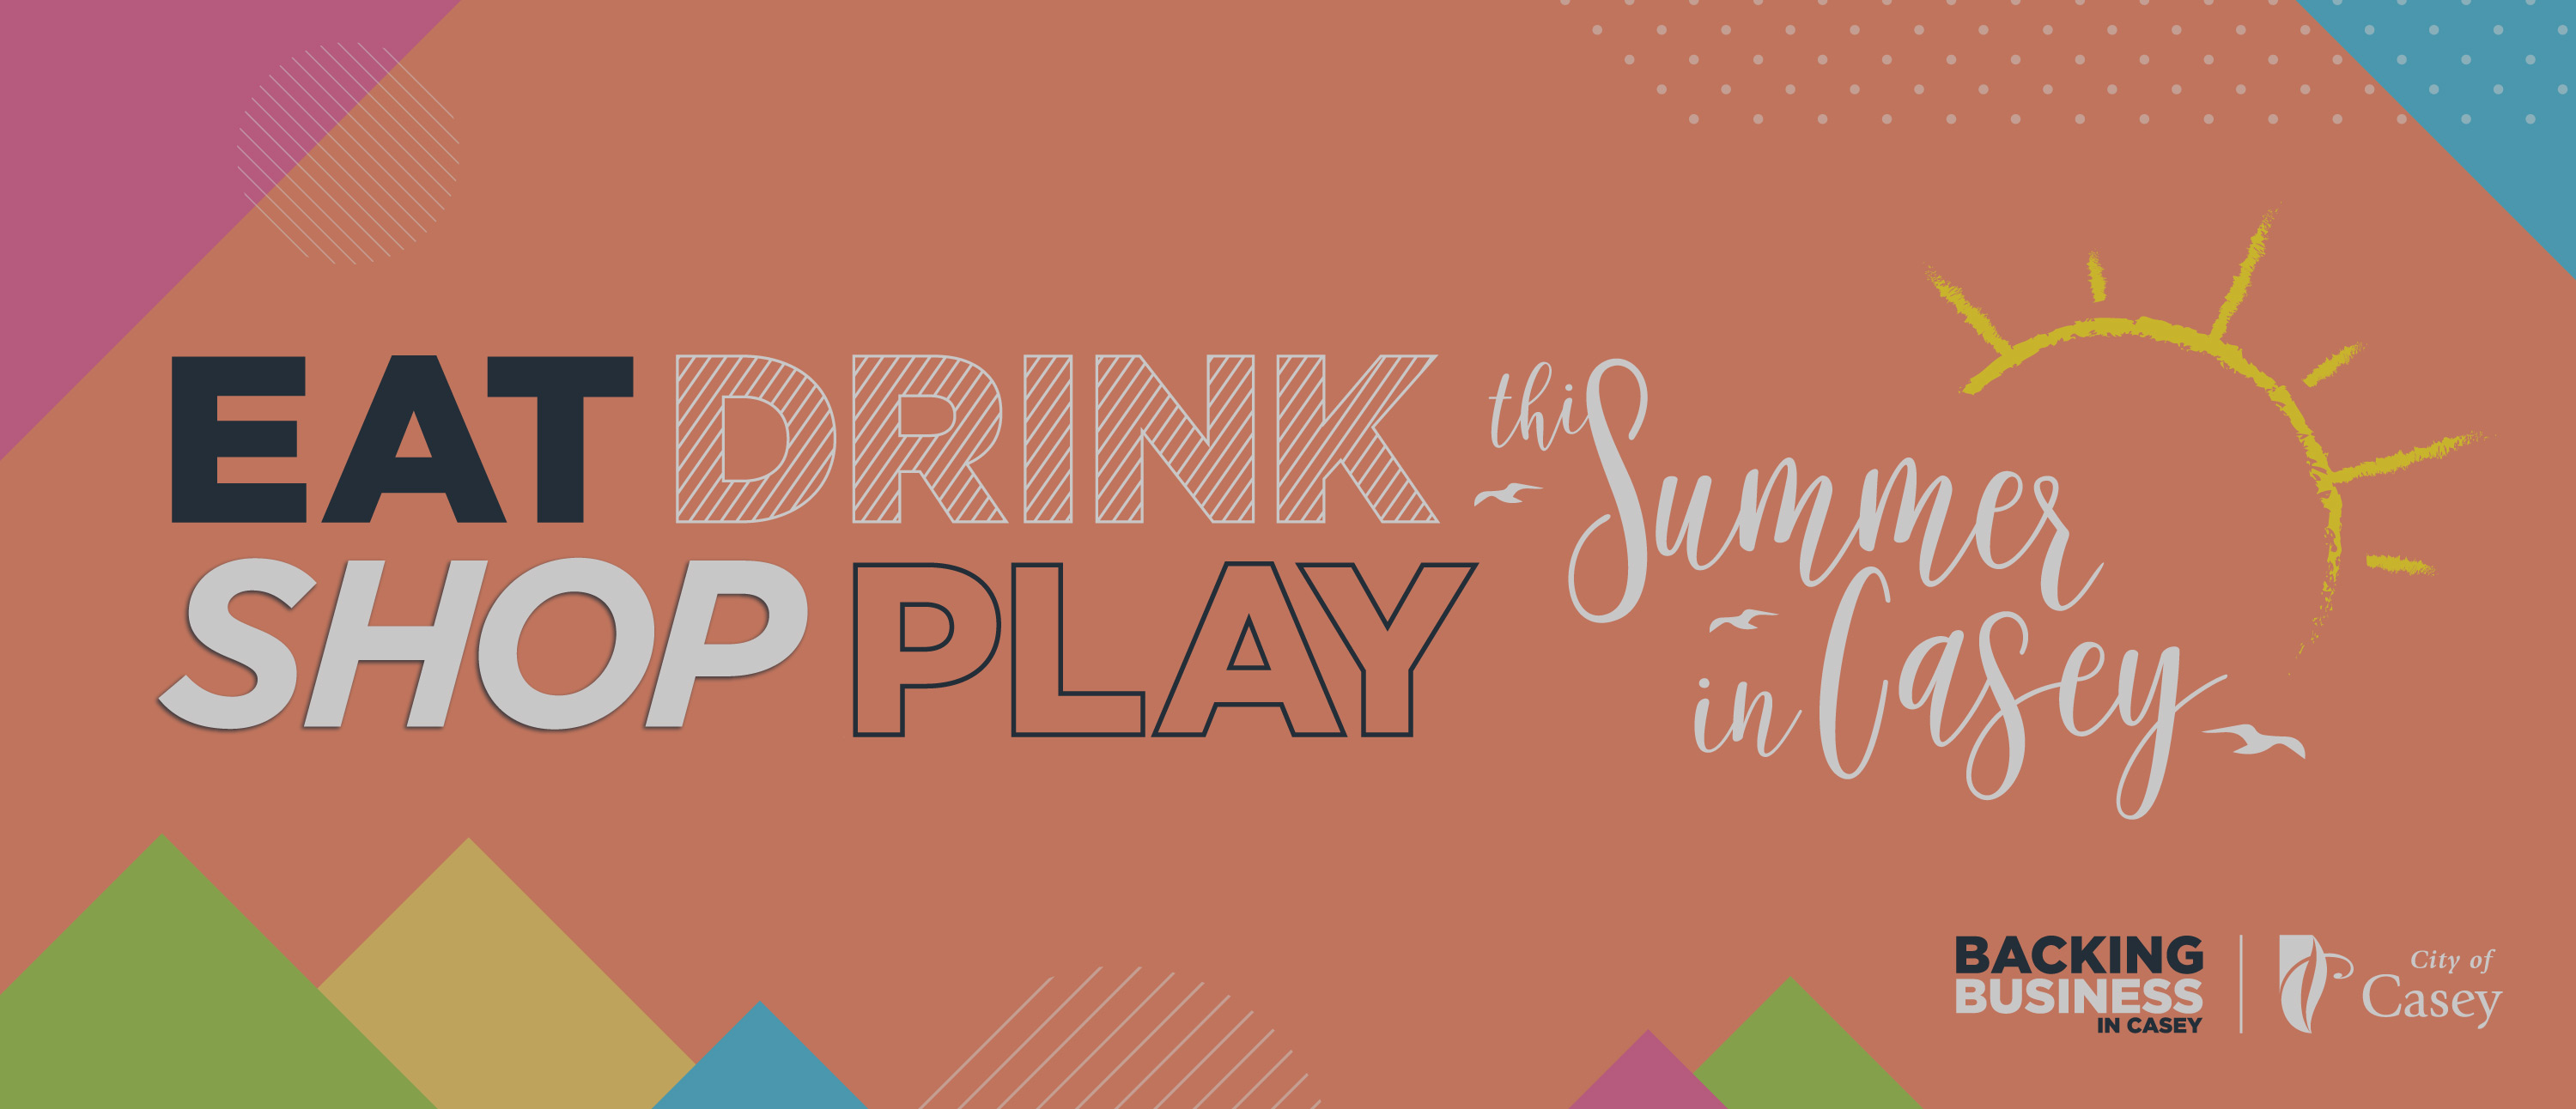 Eat, drink, shop local in Casey this Summer